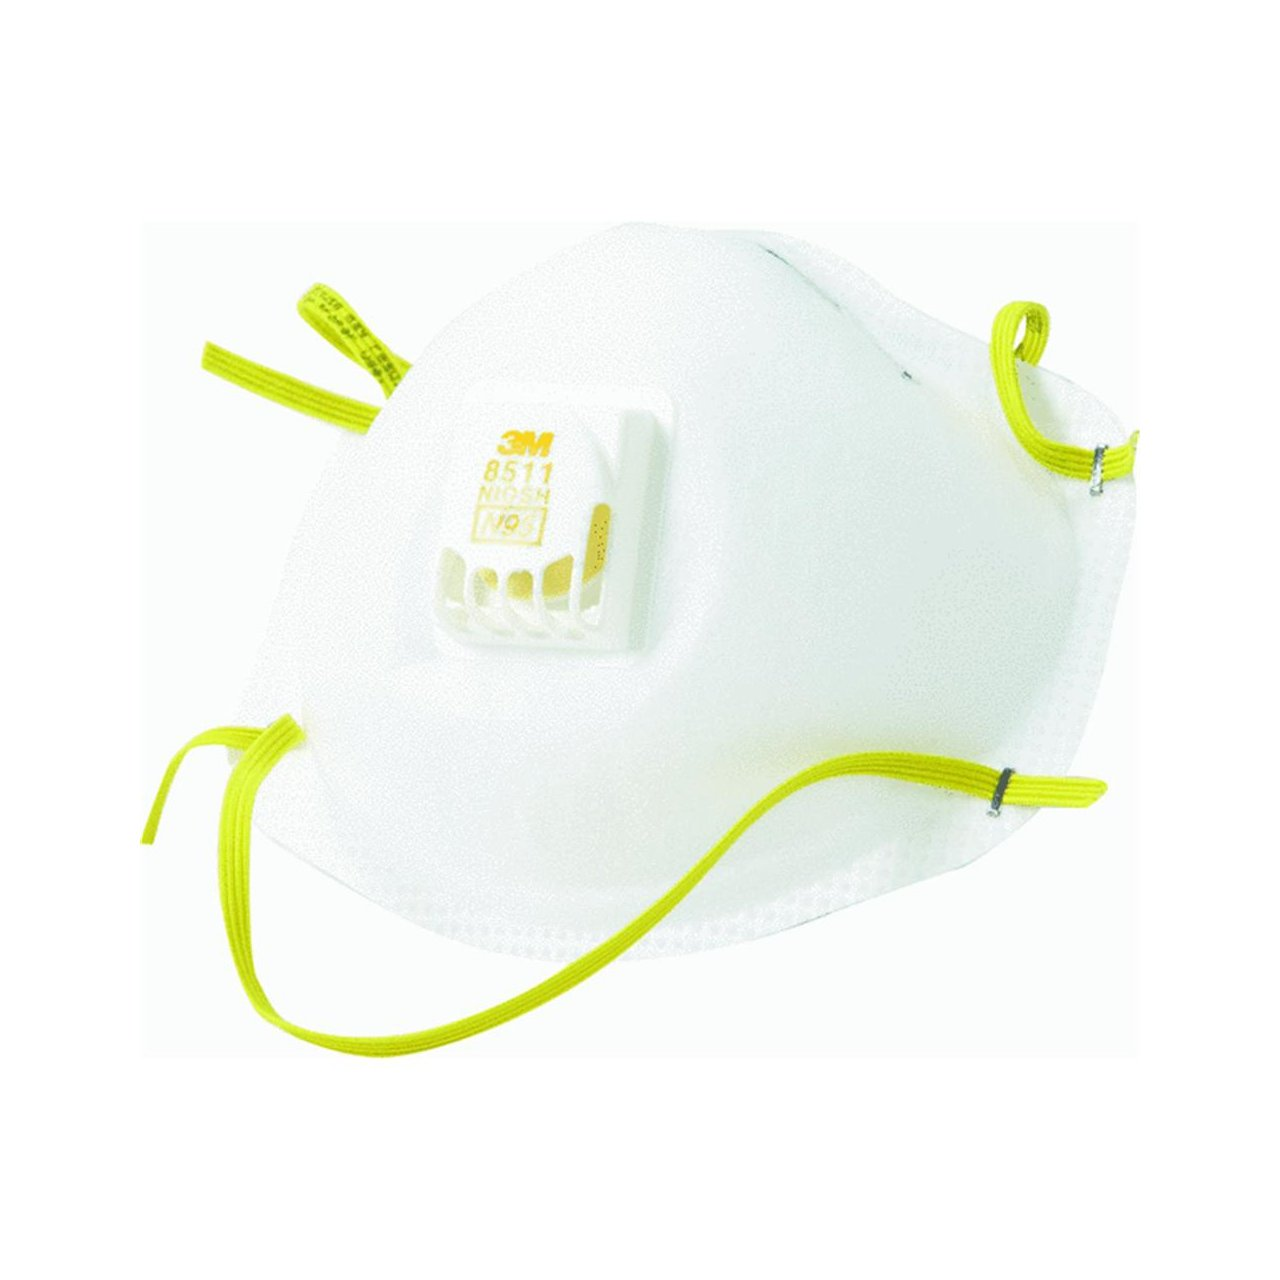 3M 8511 Particulate N95 Respirator with Valve, 20-Pack